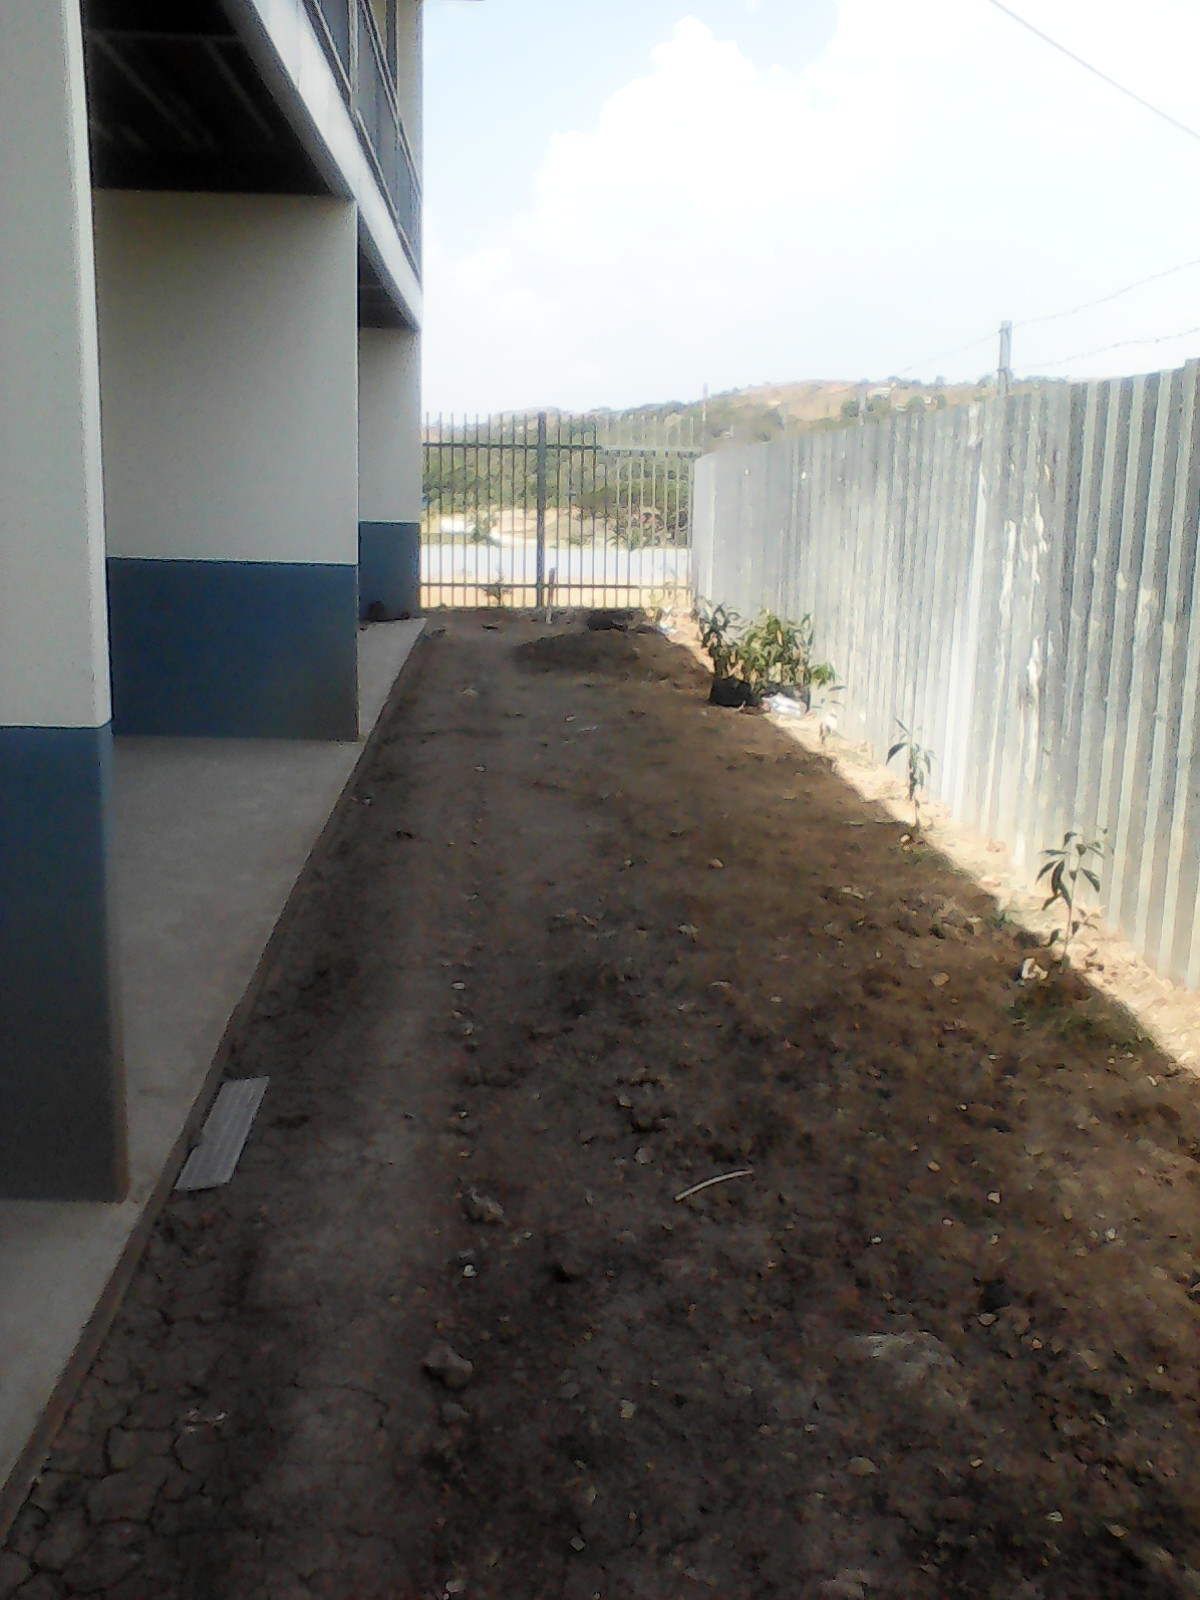 New Development for sale in Port Moresby 7 mile